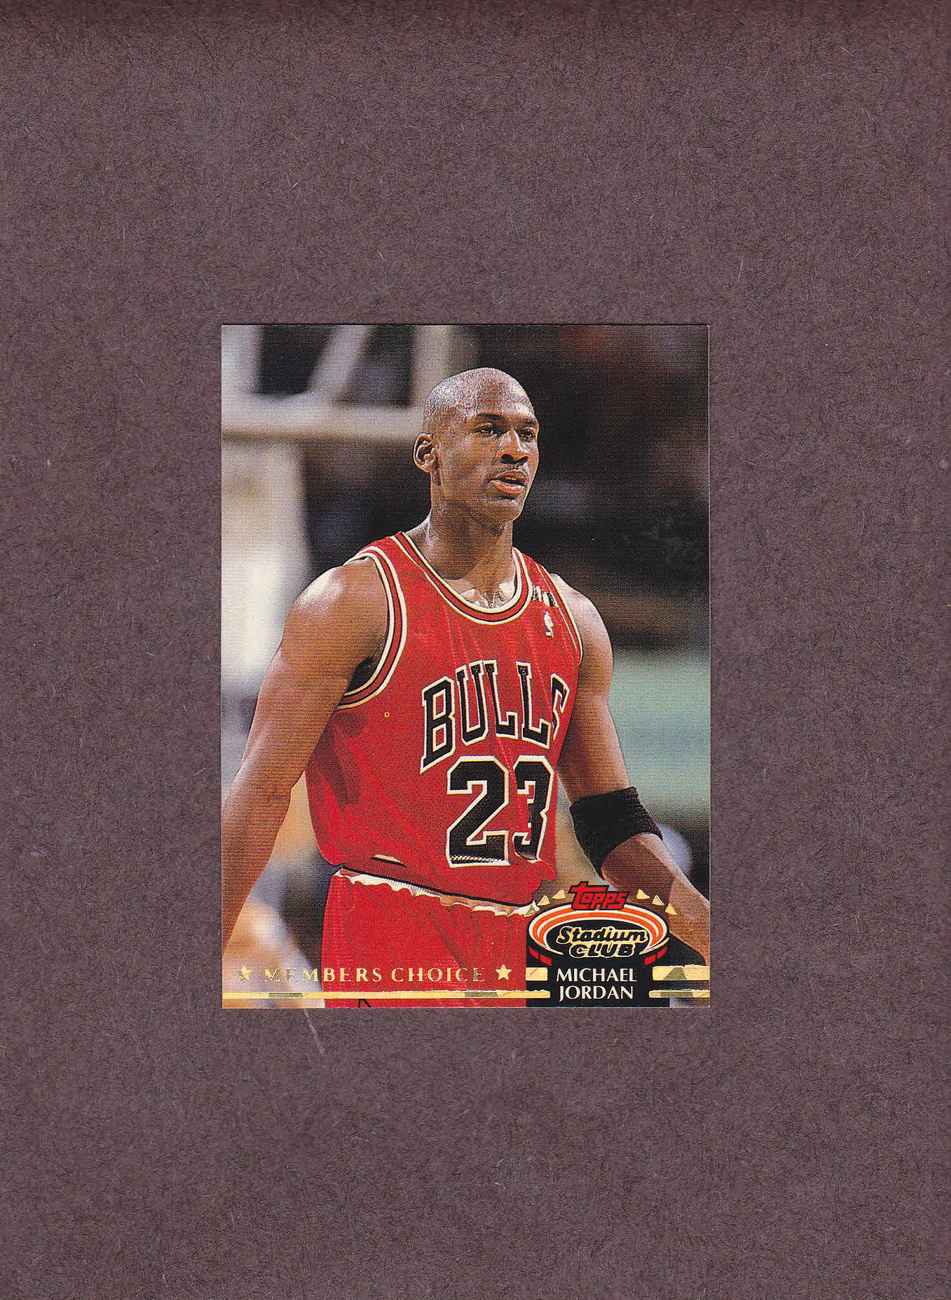 1992-93 Stadium Club # 210 Michael Jordan Chicago Bulls NM